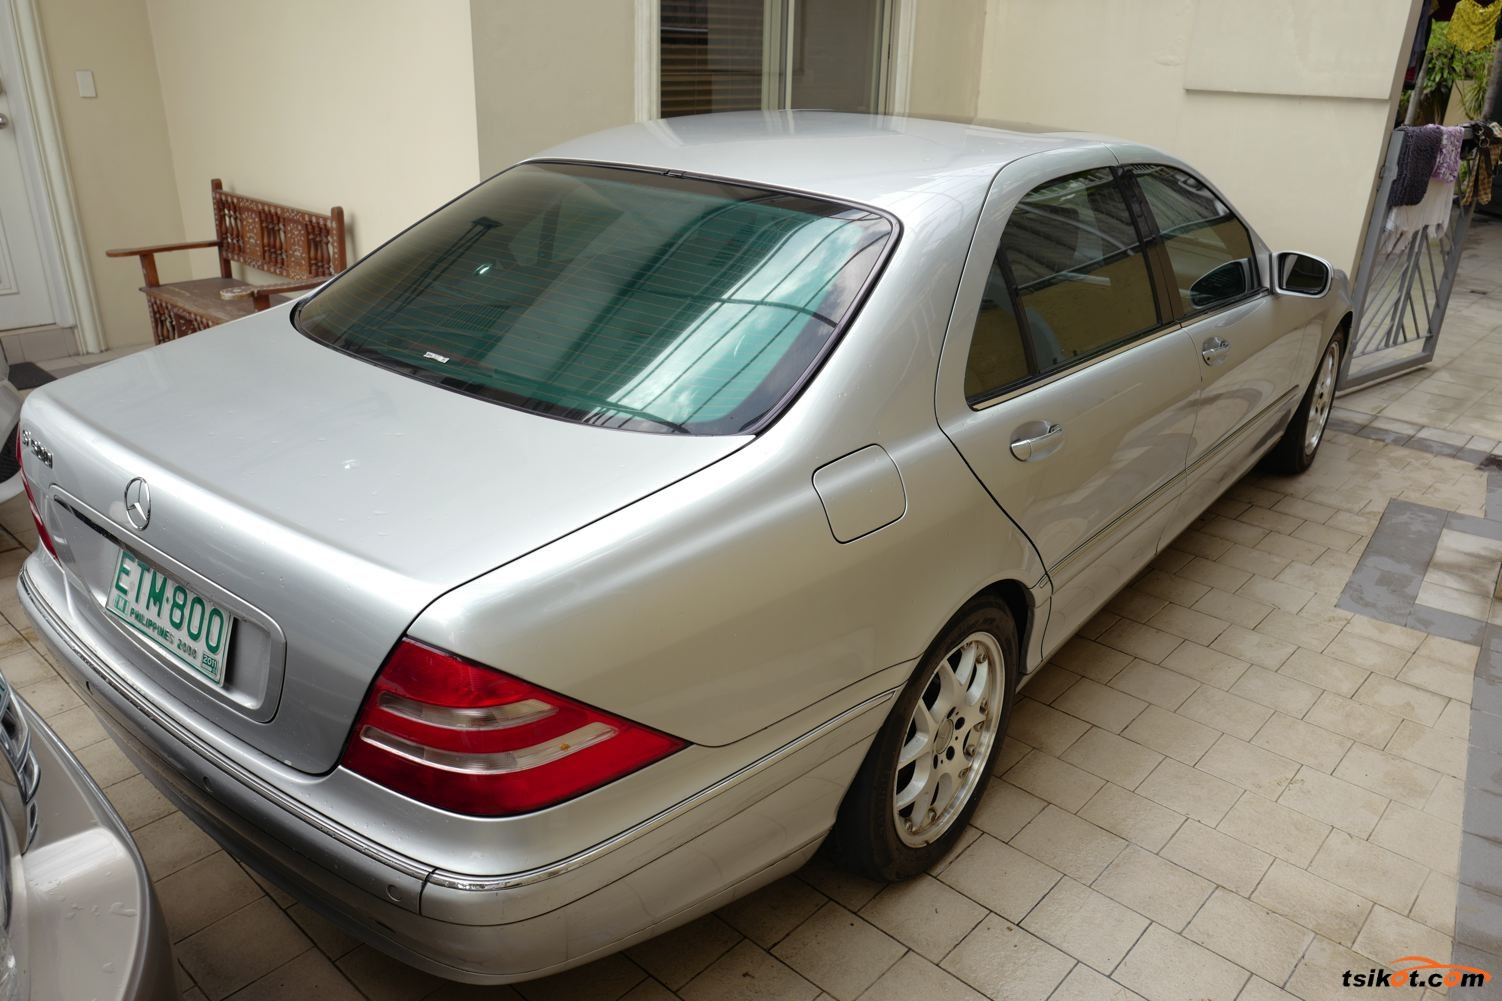 mercedes benz s class 2007 car for sale metro manila. Black Bedroom Furniture Sets. Home Design Ideas